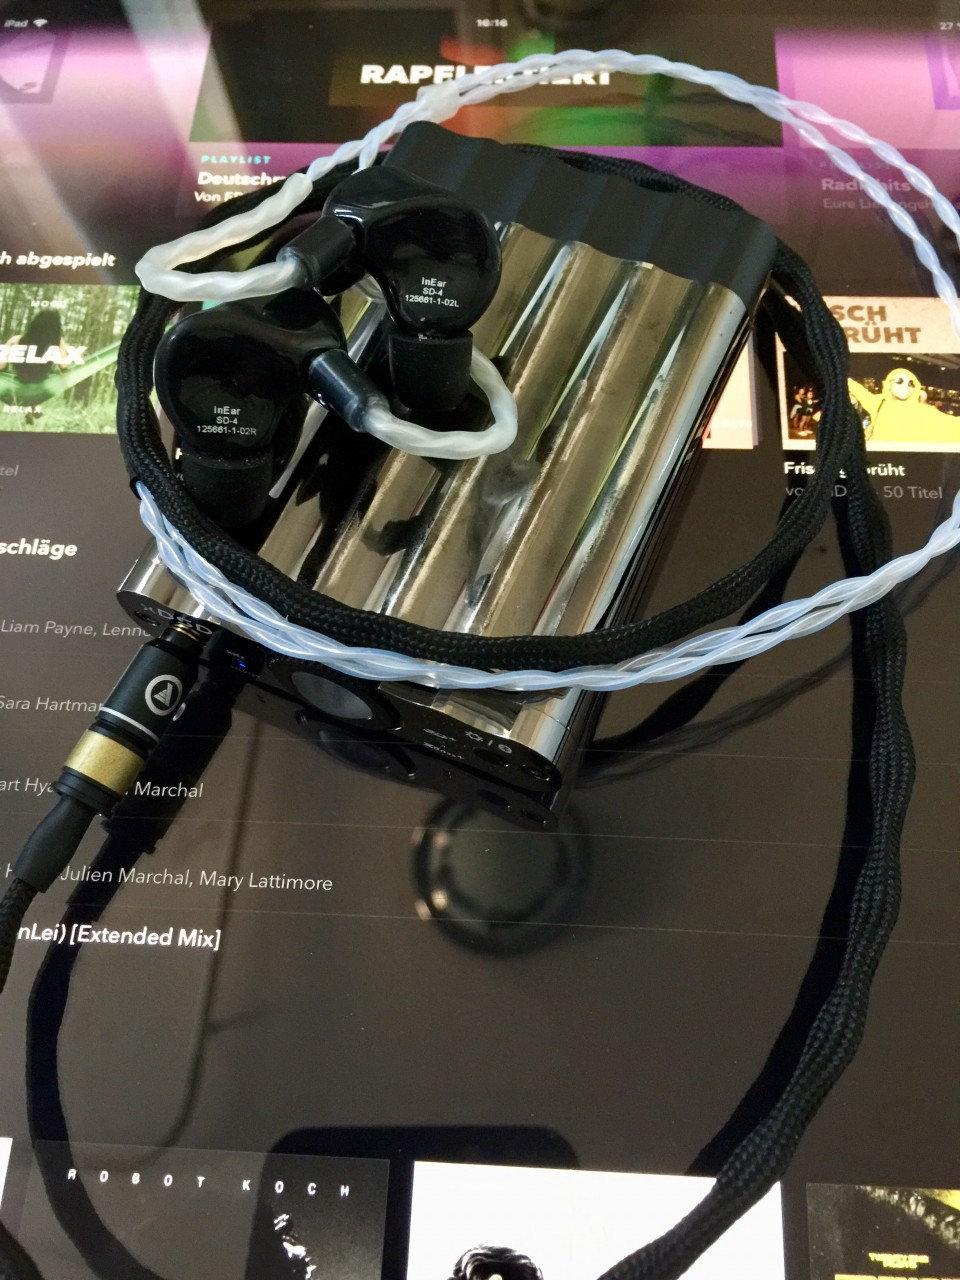 - InEar StageDiver4<br /> - iFi Audio xDSD<br /> - Lavricables silver